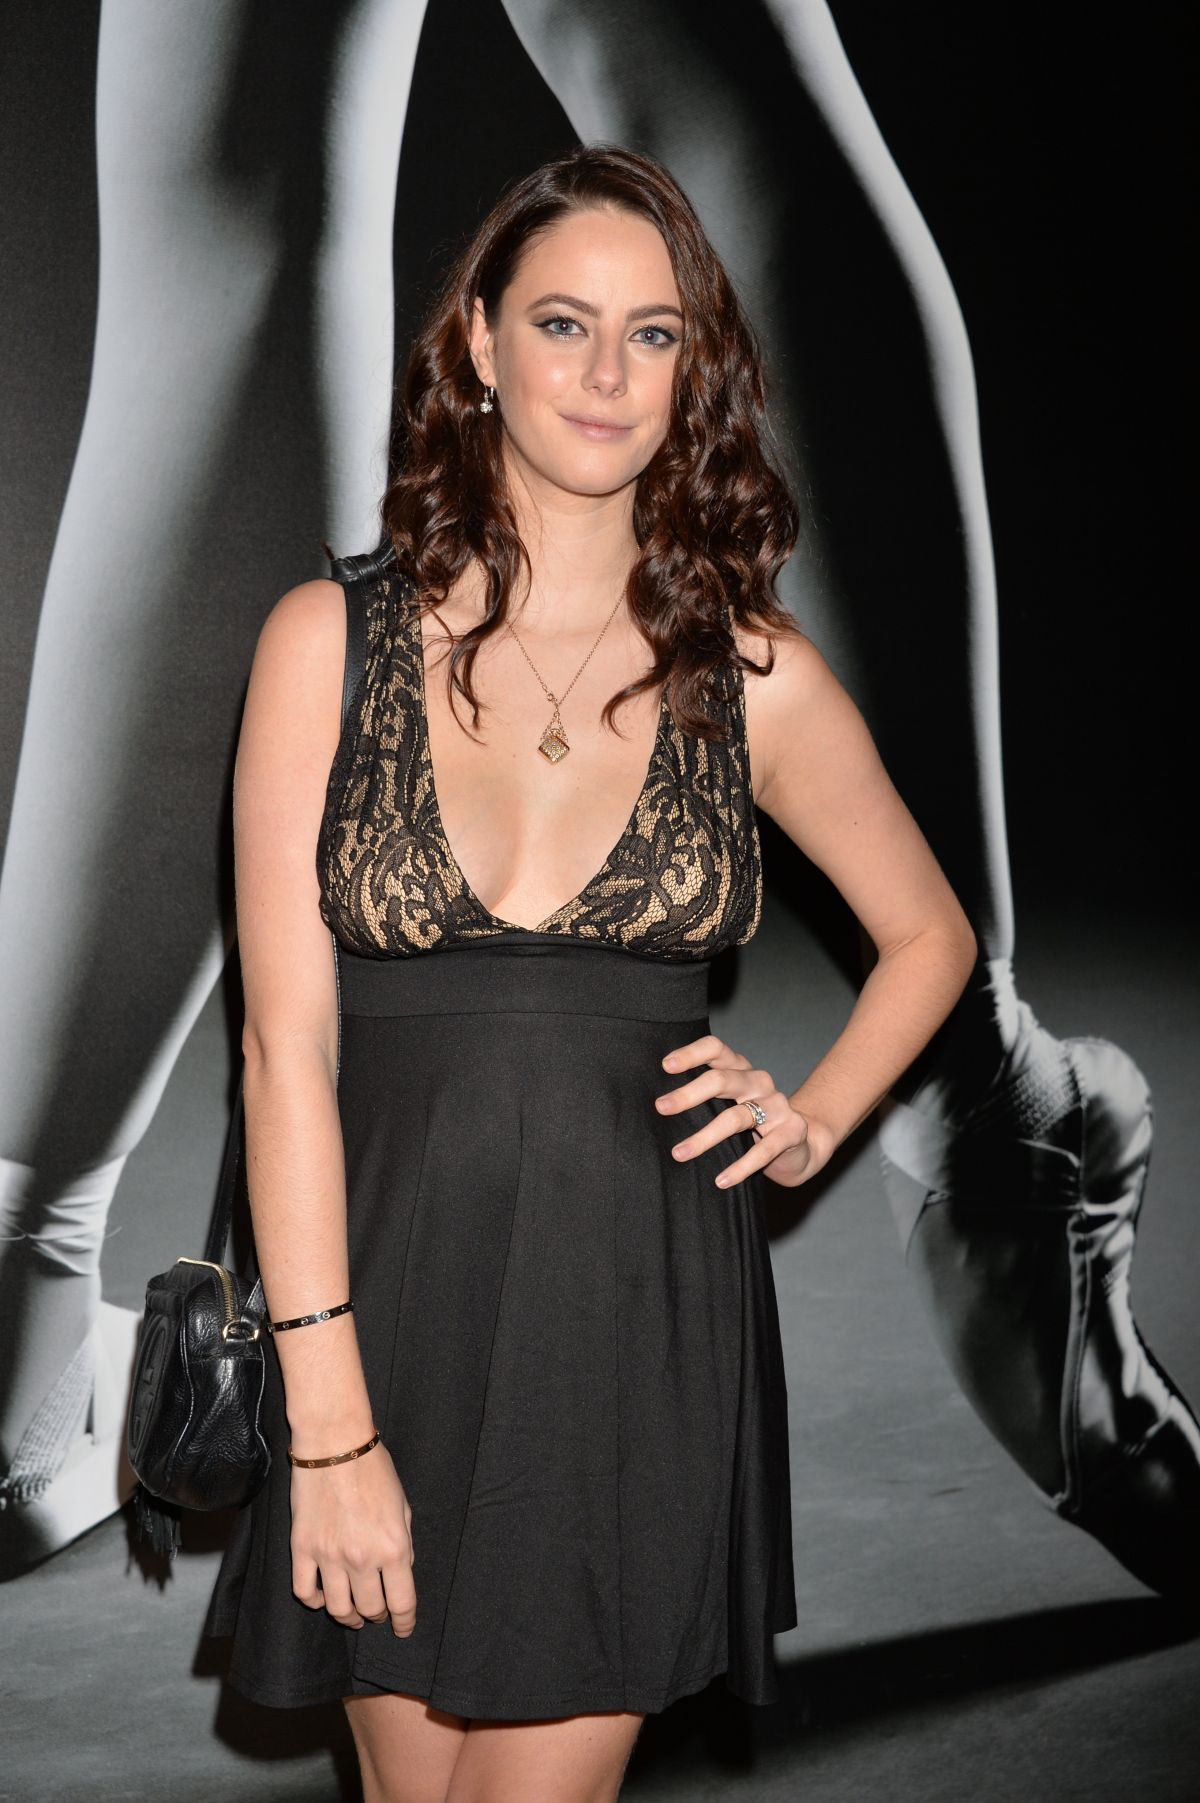 KAYA SCODELARIO at